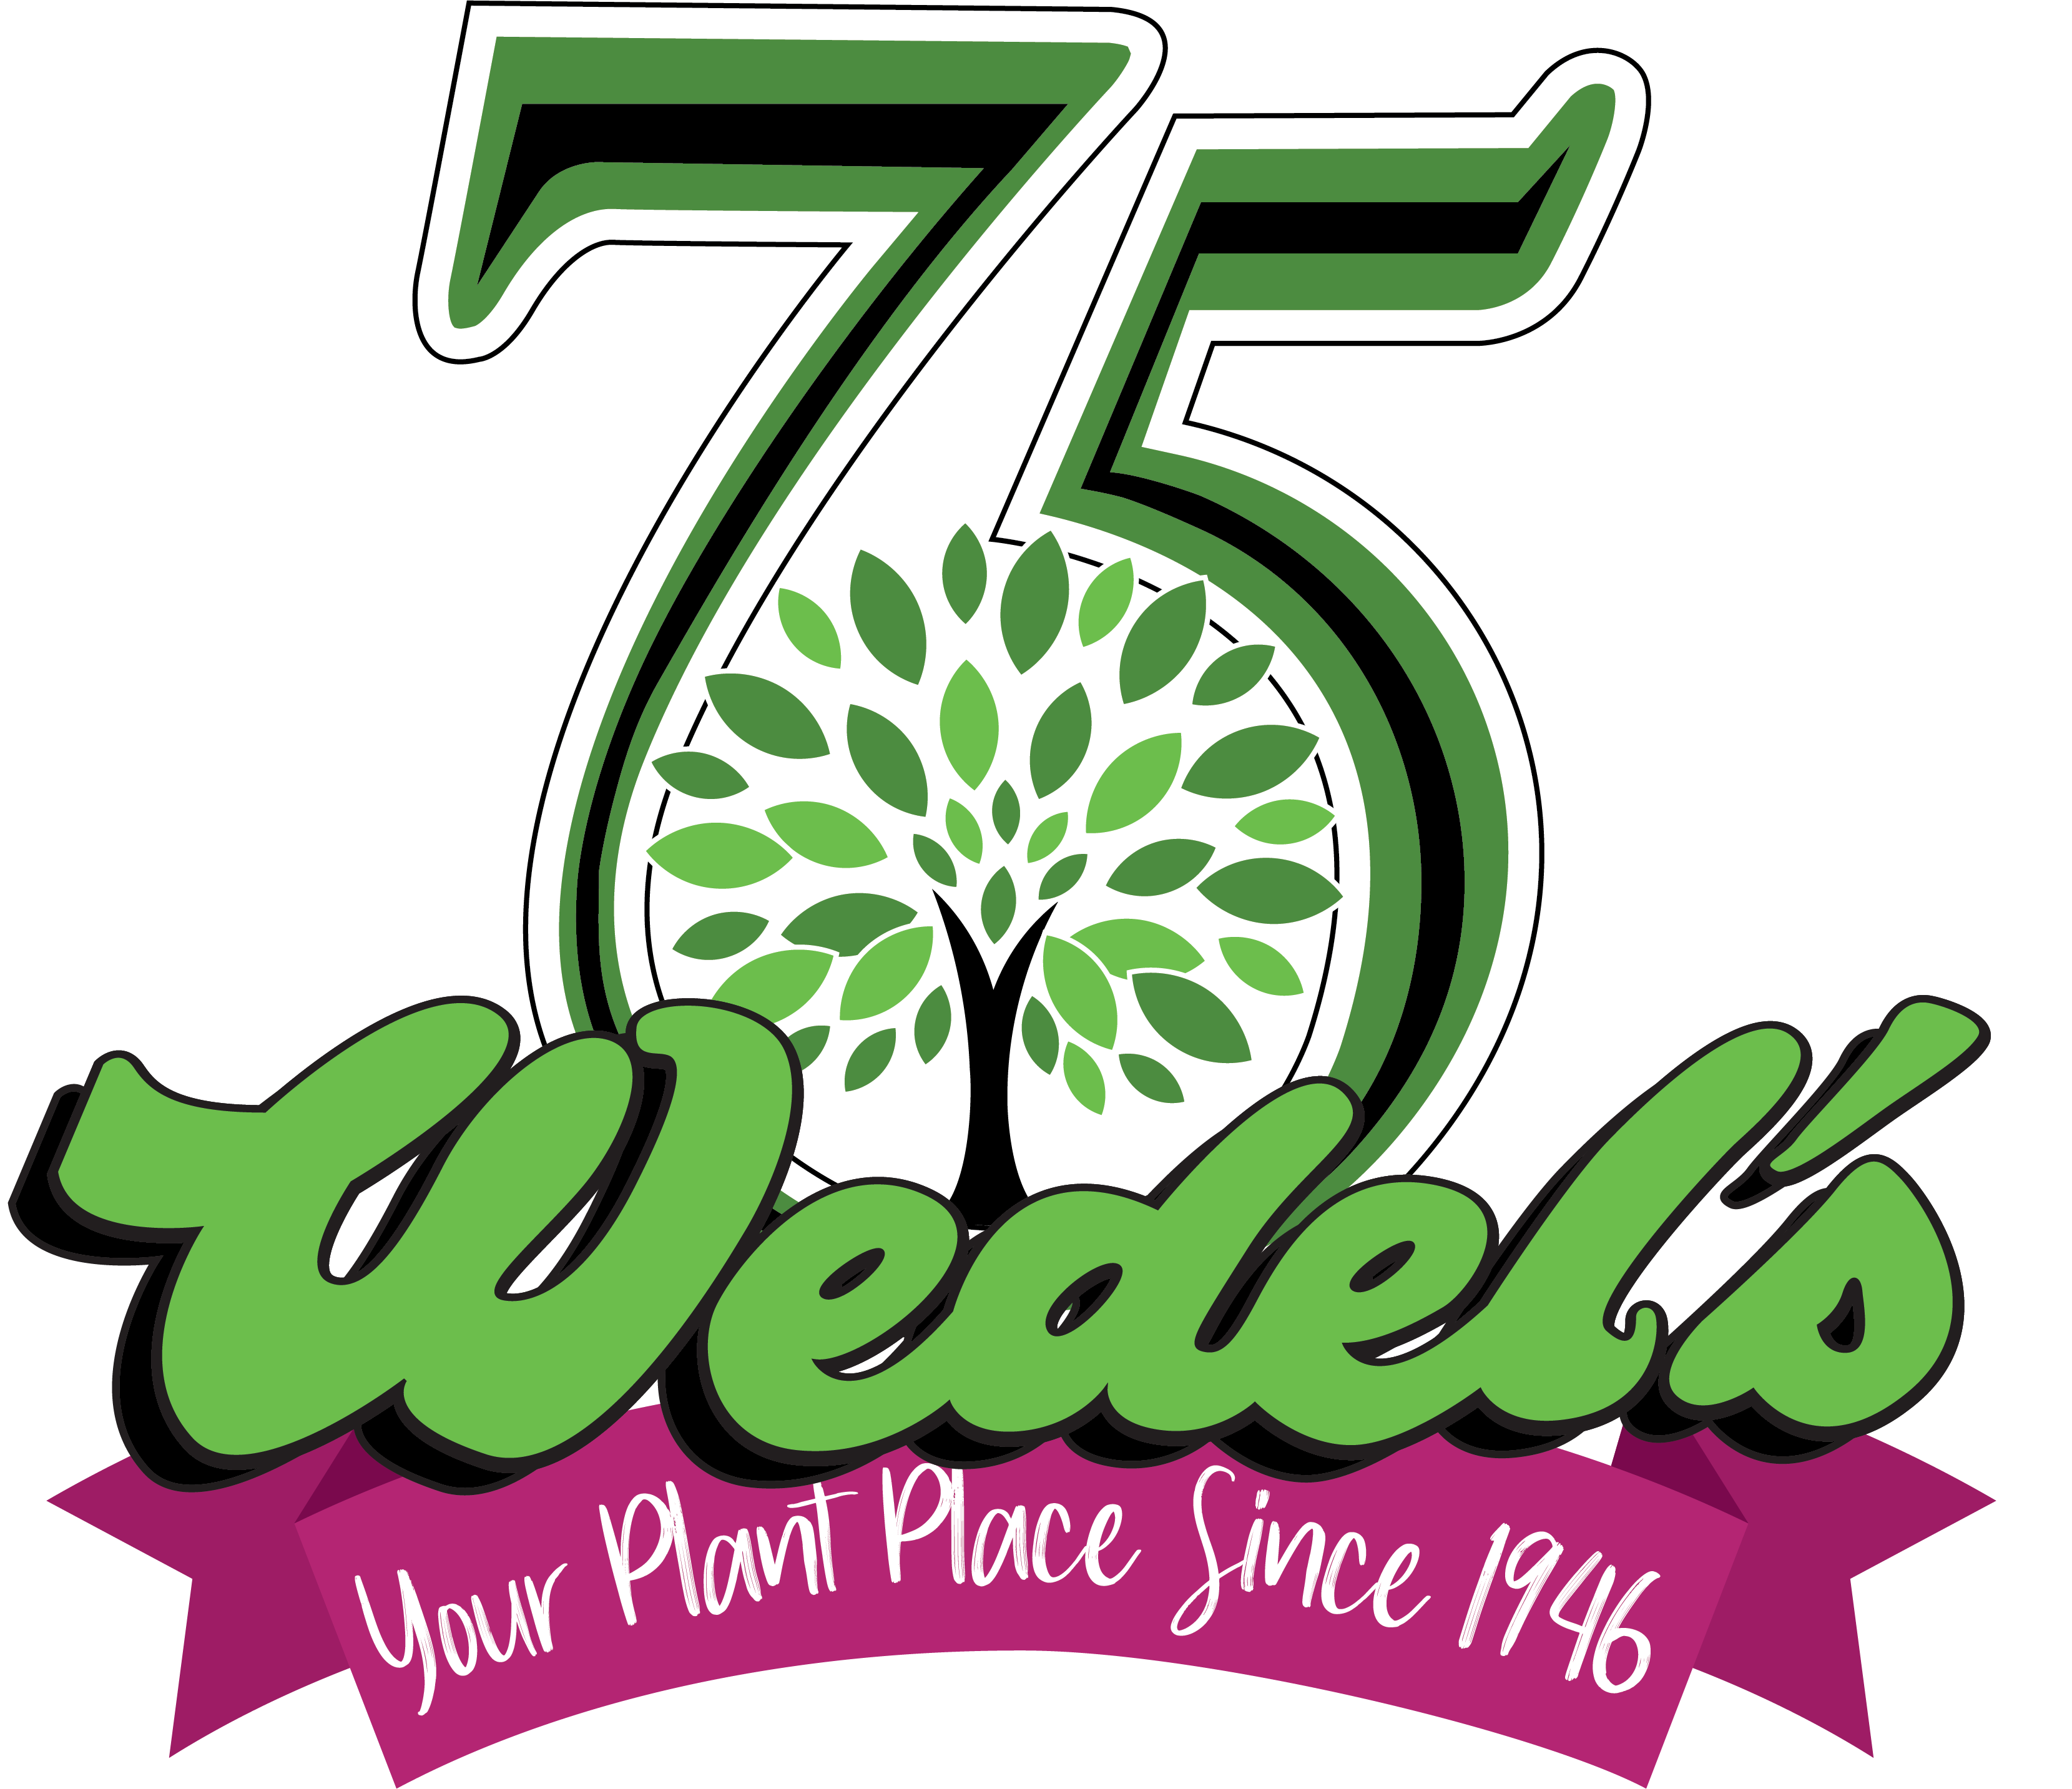 Celebrating 75 years of Wedels. Your Plant Place Since 1946.